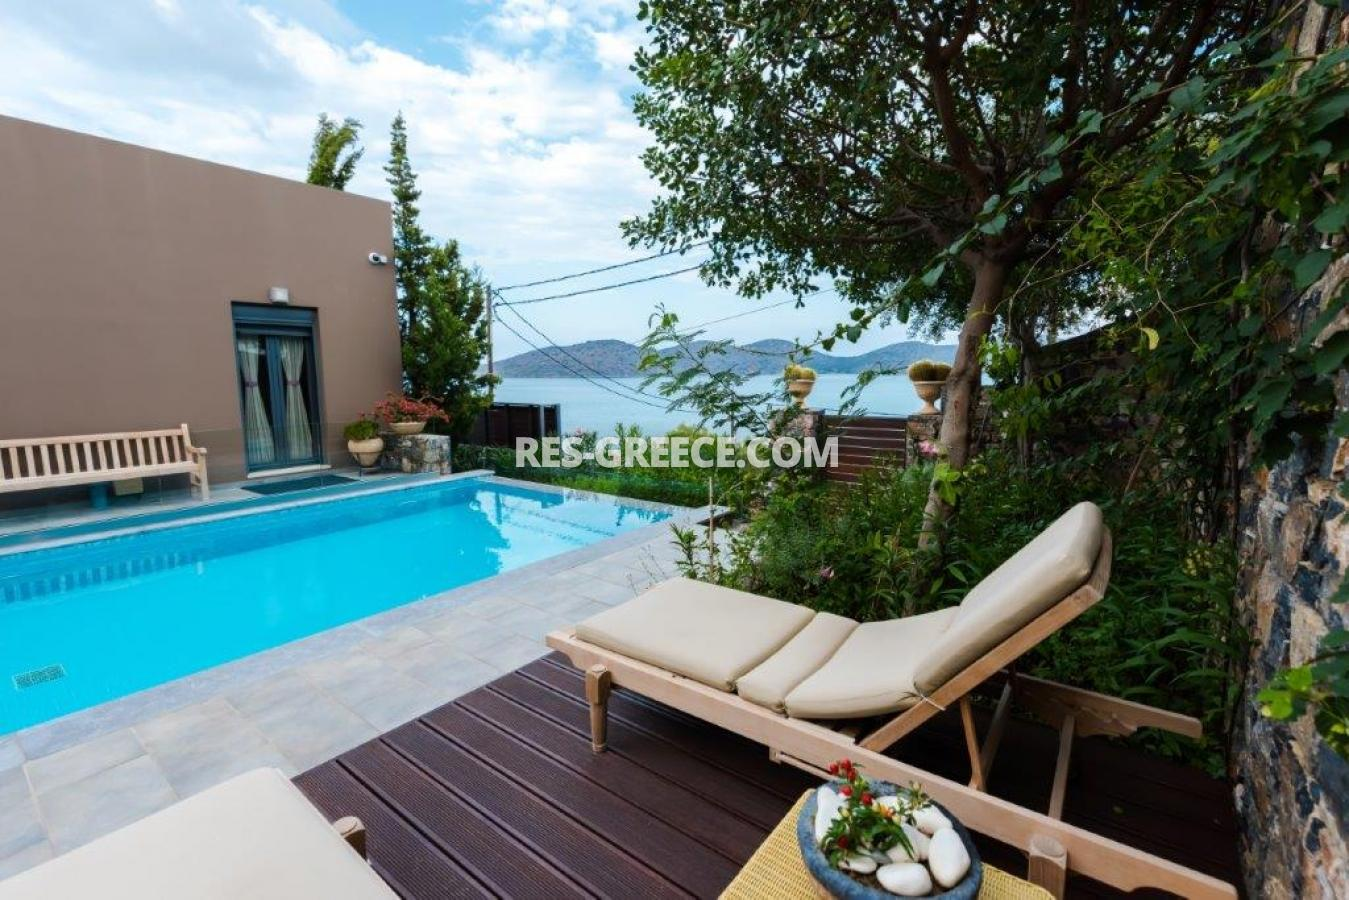 Aura Blue, Crete, Greece - villa with pool for sale in the best spot in Crete, in Elounda - Photo 31